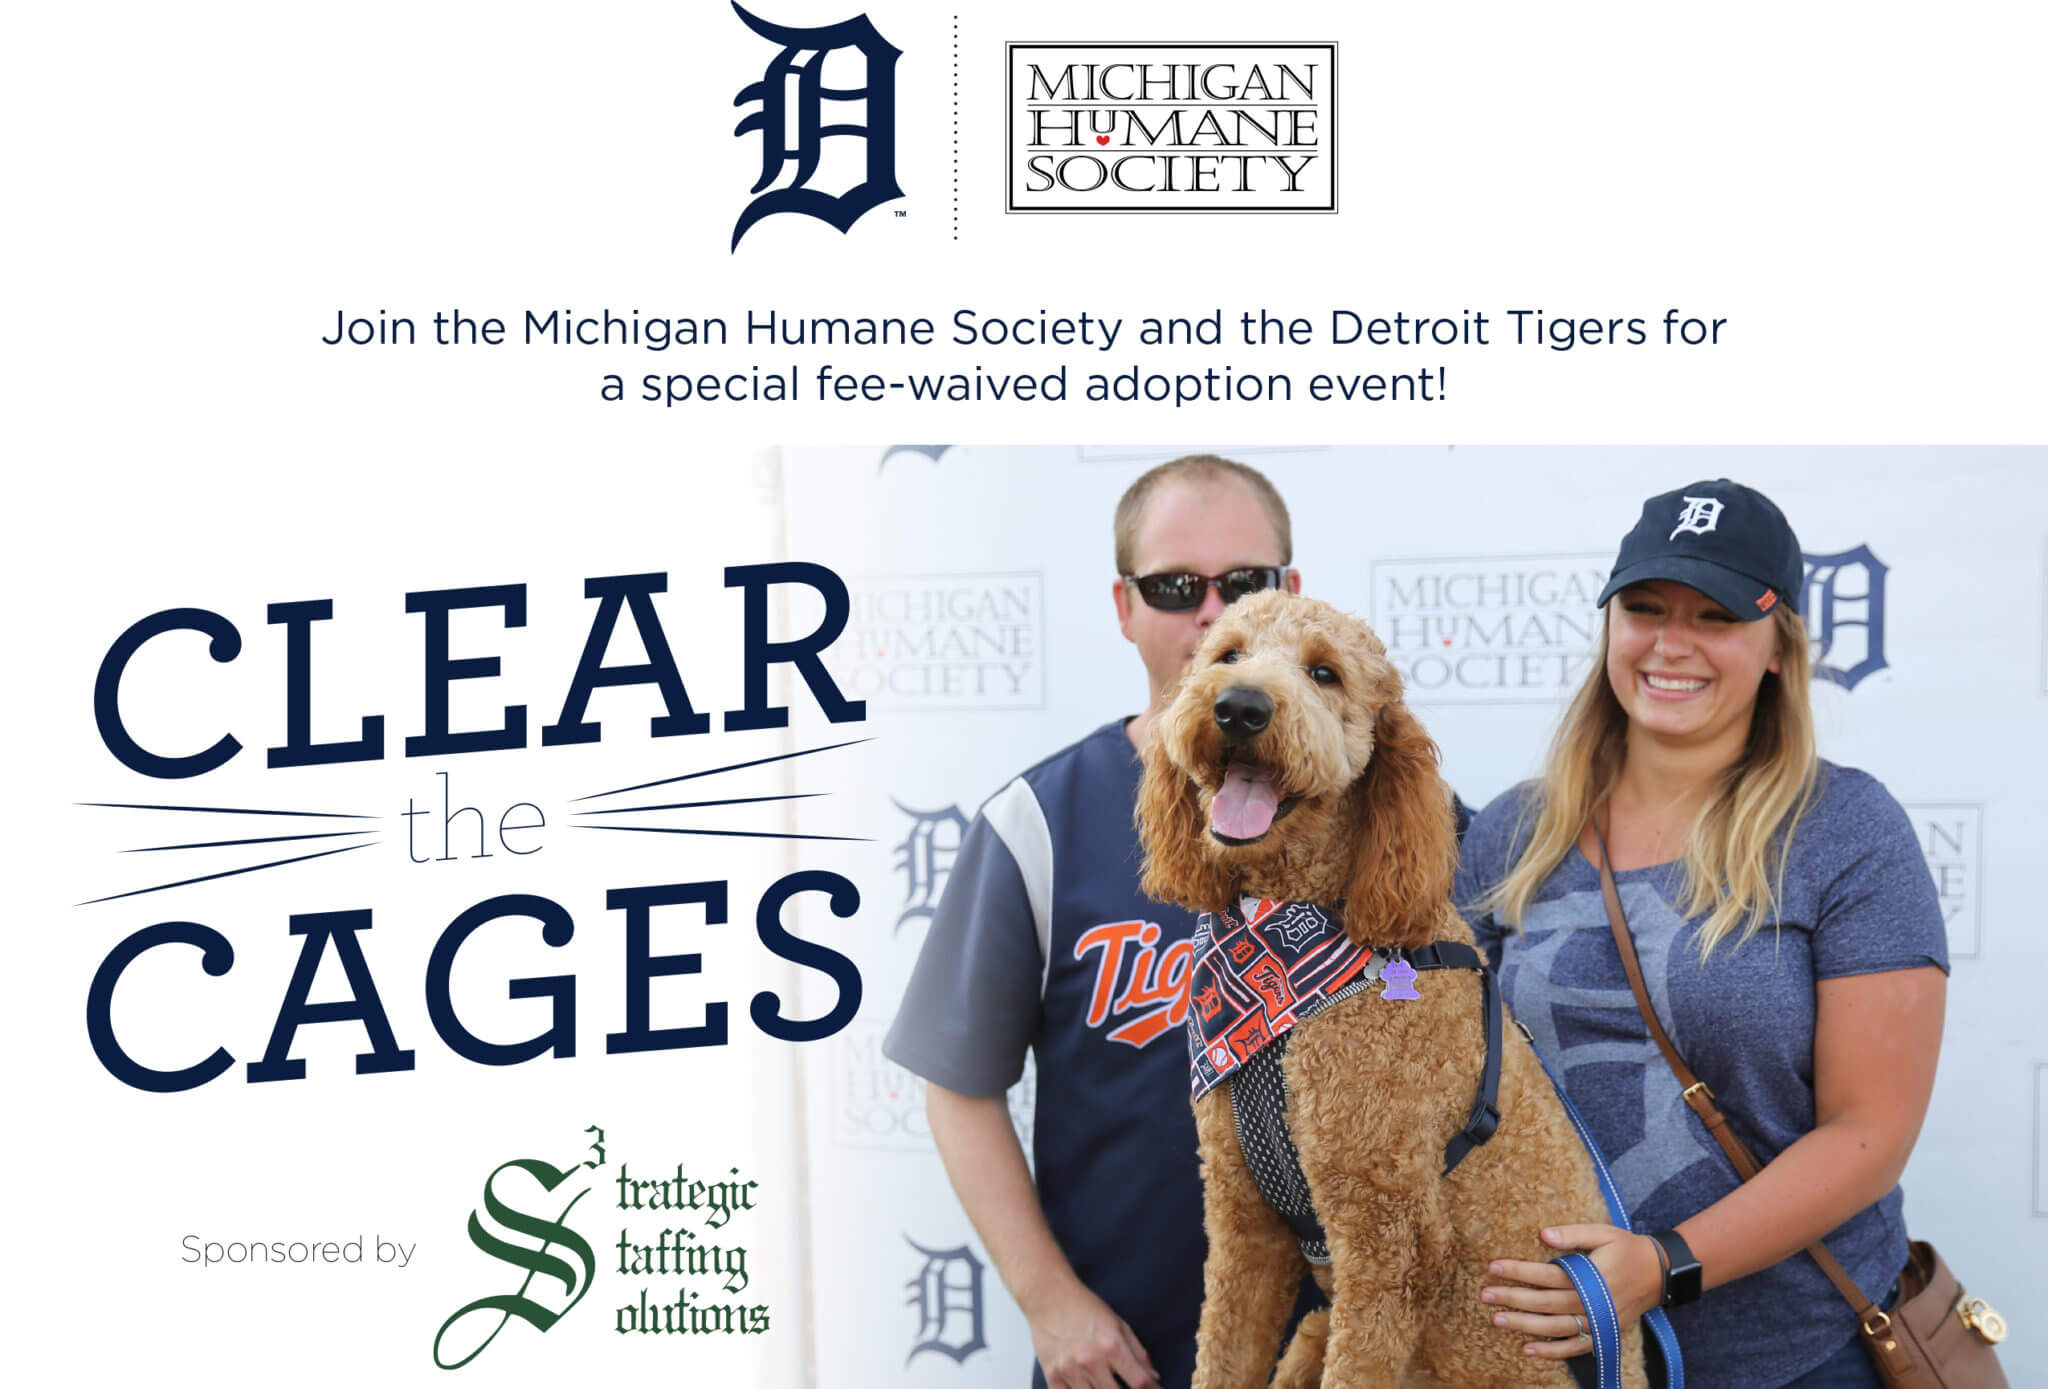 The Detroit Tigers Winter Caravan stops by the Michigan Humane Society's Detroit shelter.